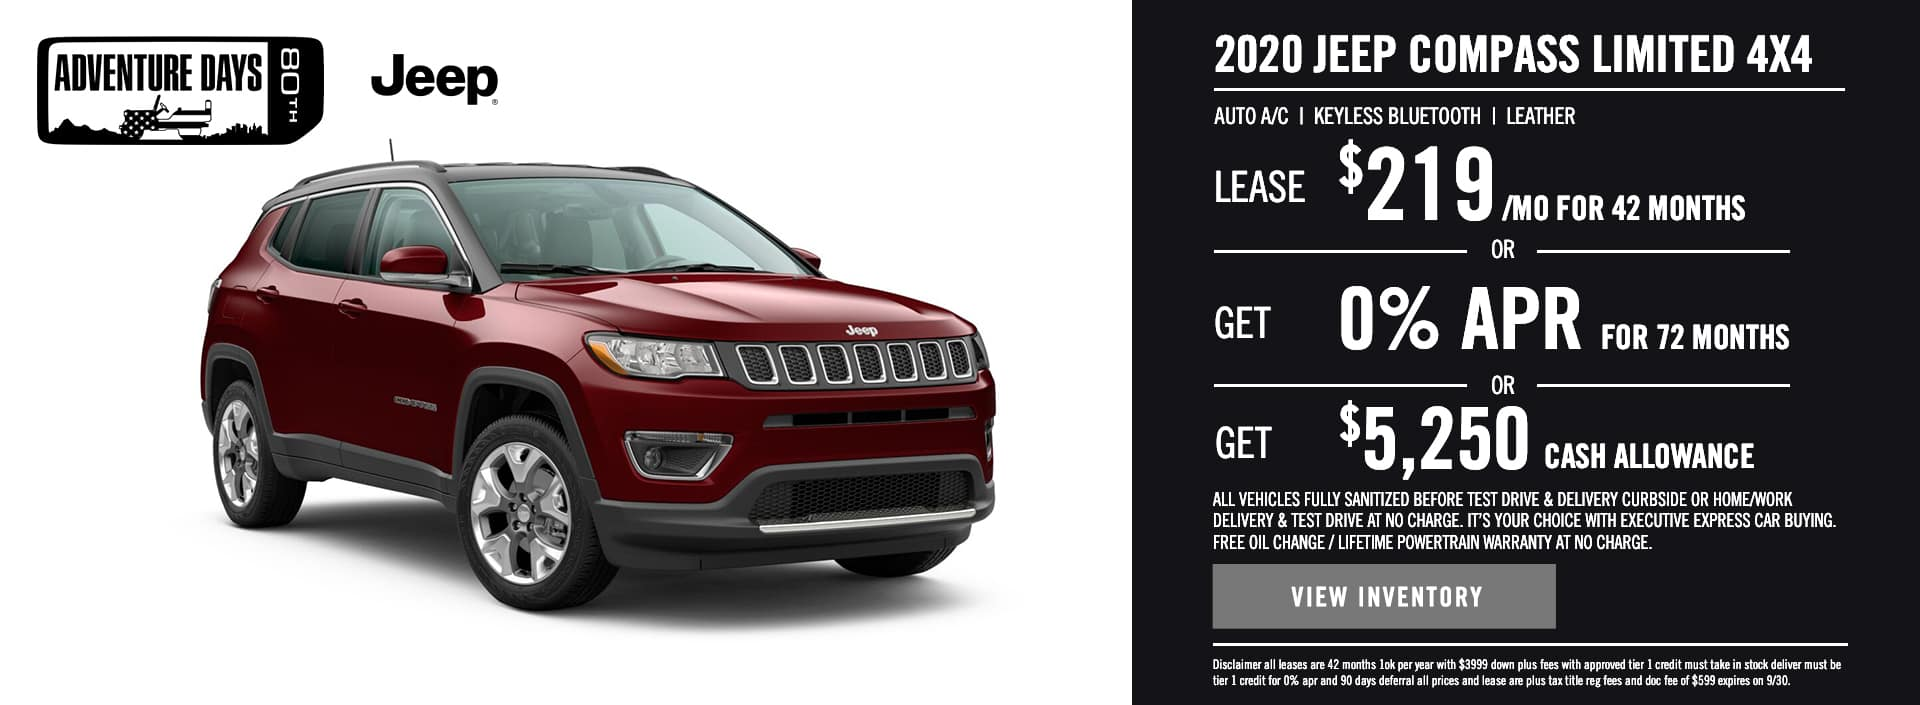 EAG_Jeep_2020 Jeep Compass Limited 4×4 (1)